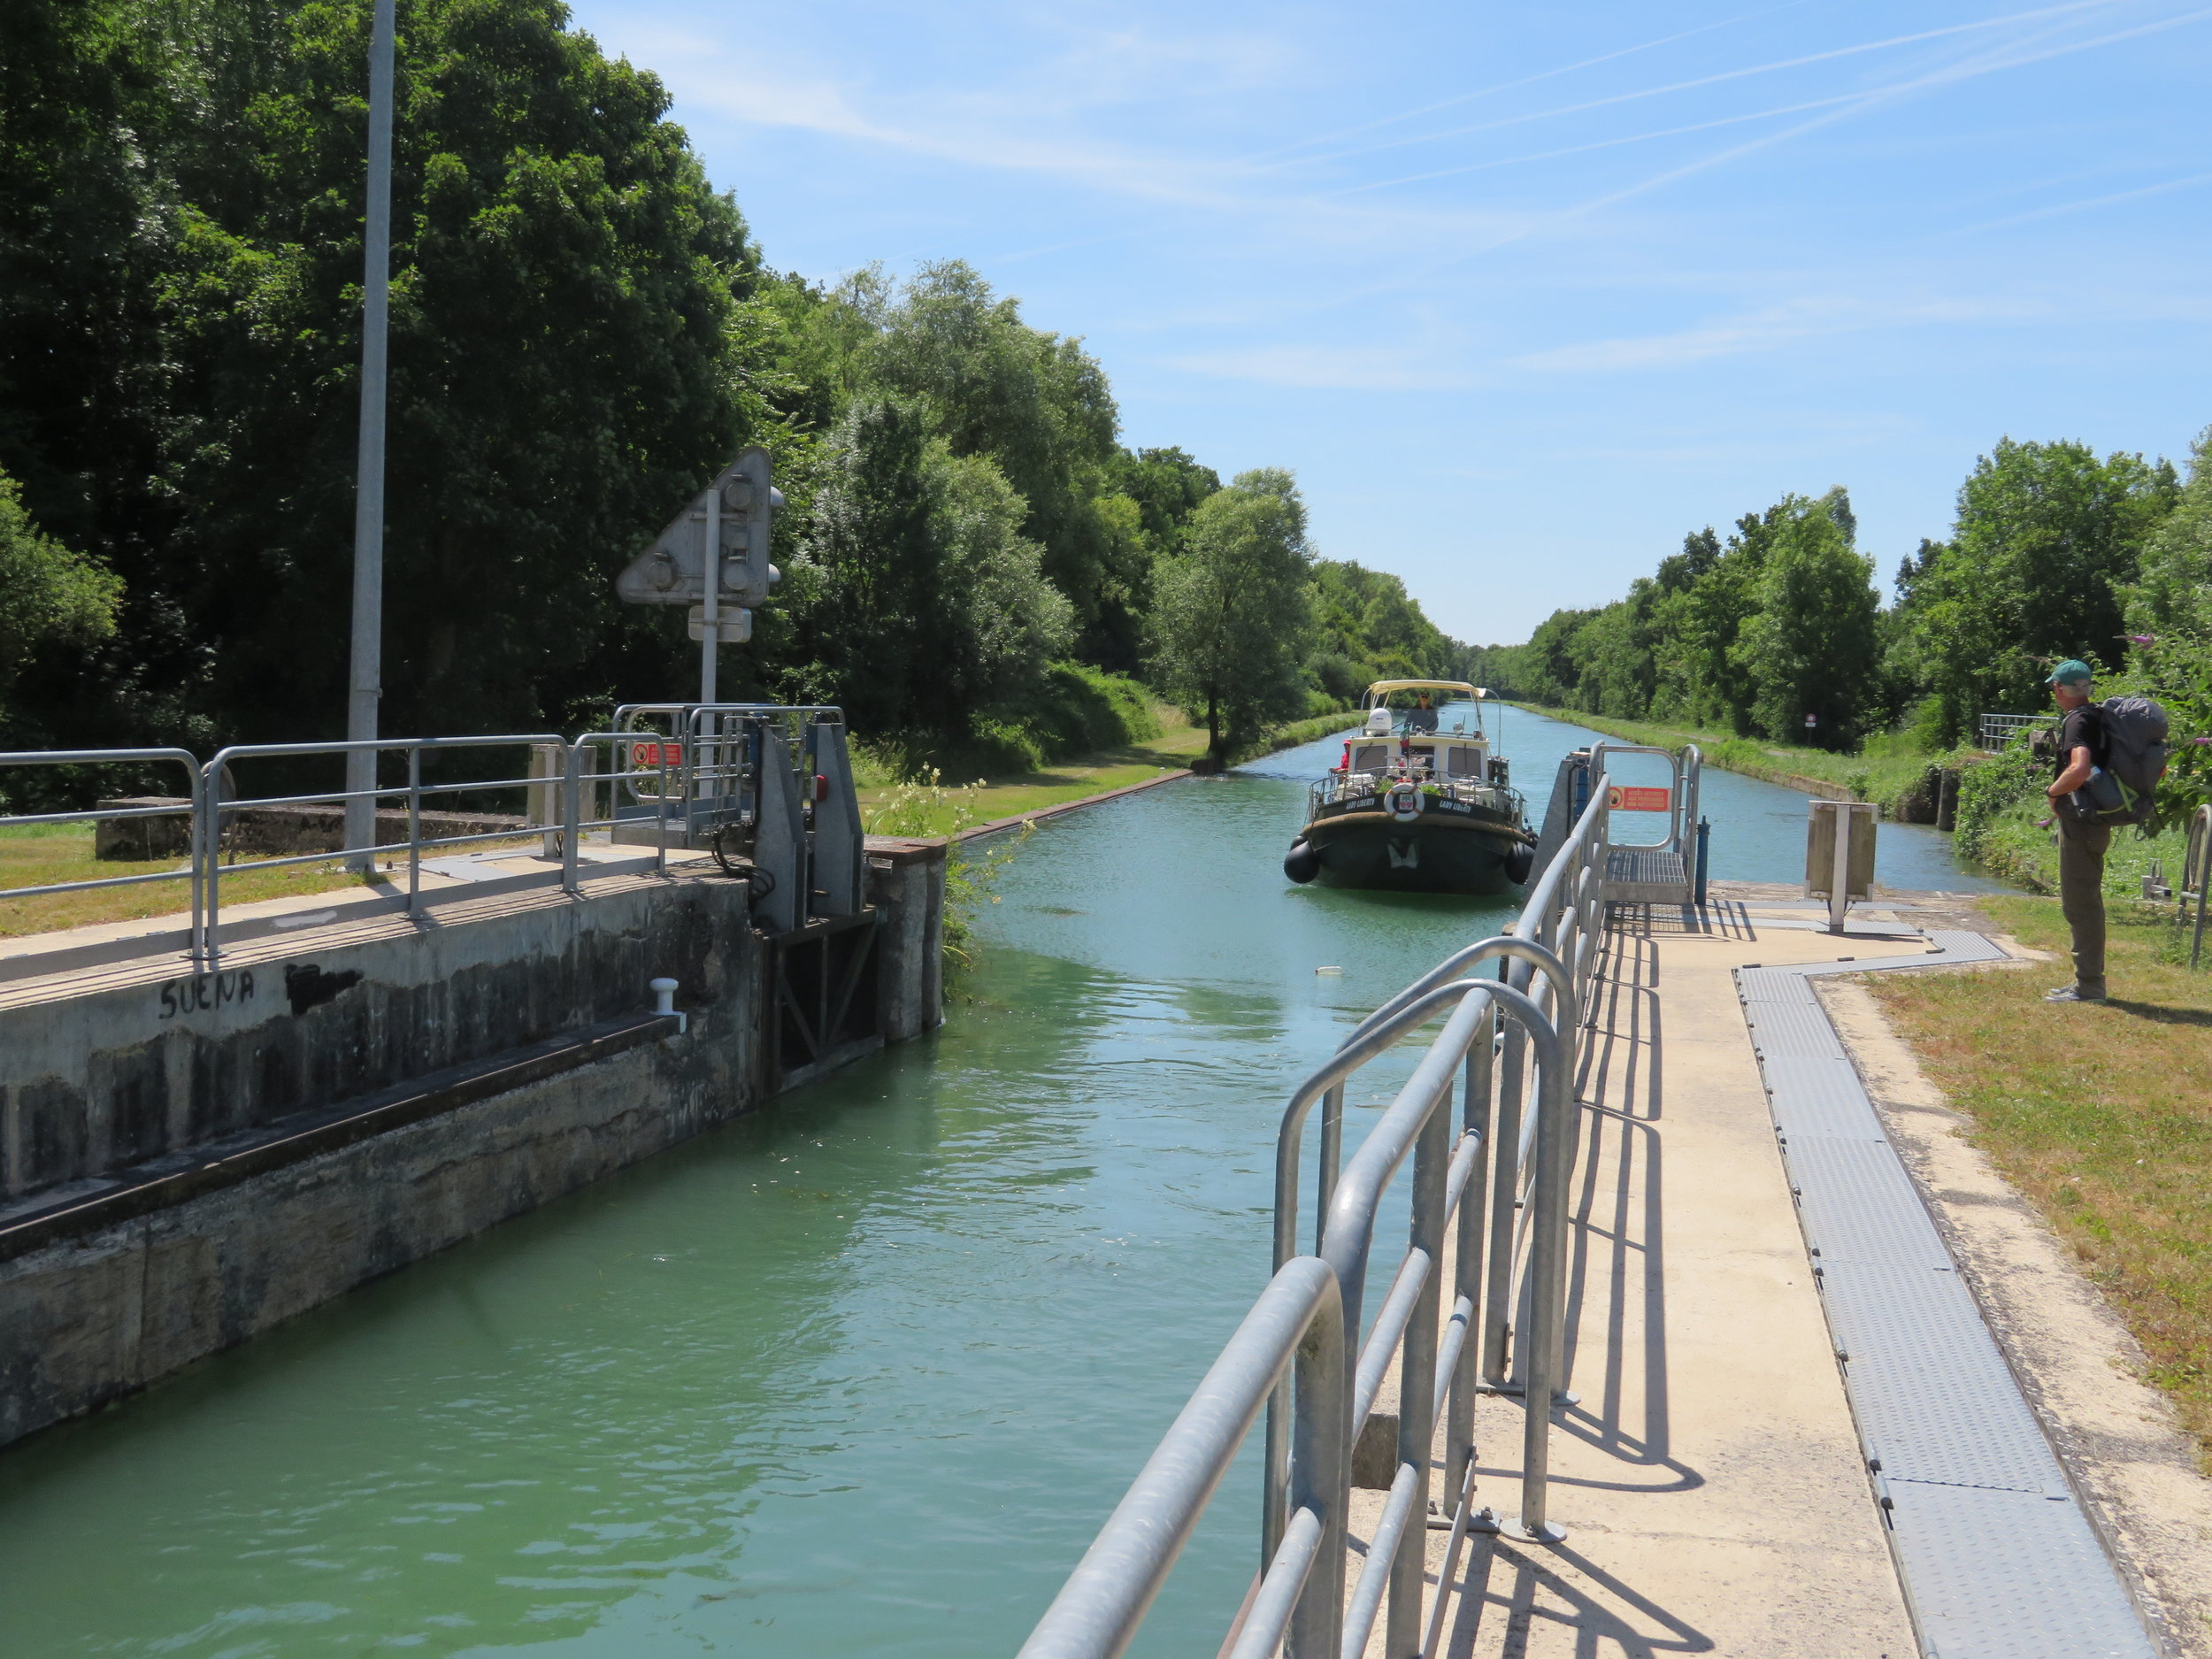 chatelraold-laChausee_operating the locks1.JPG